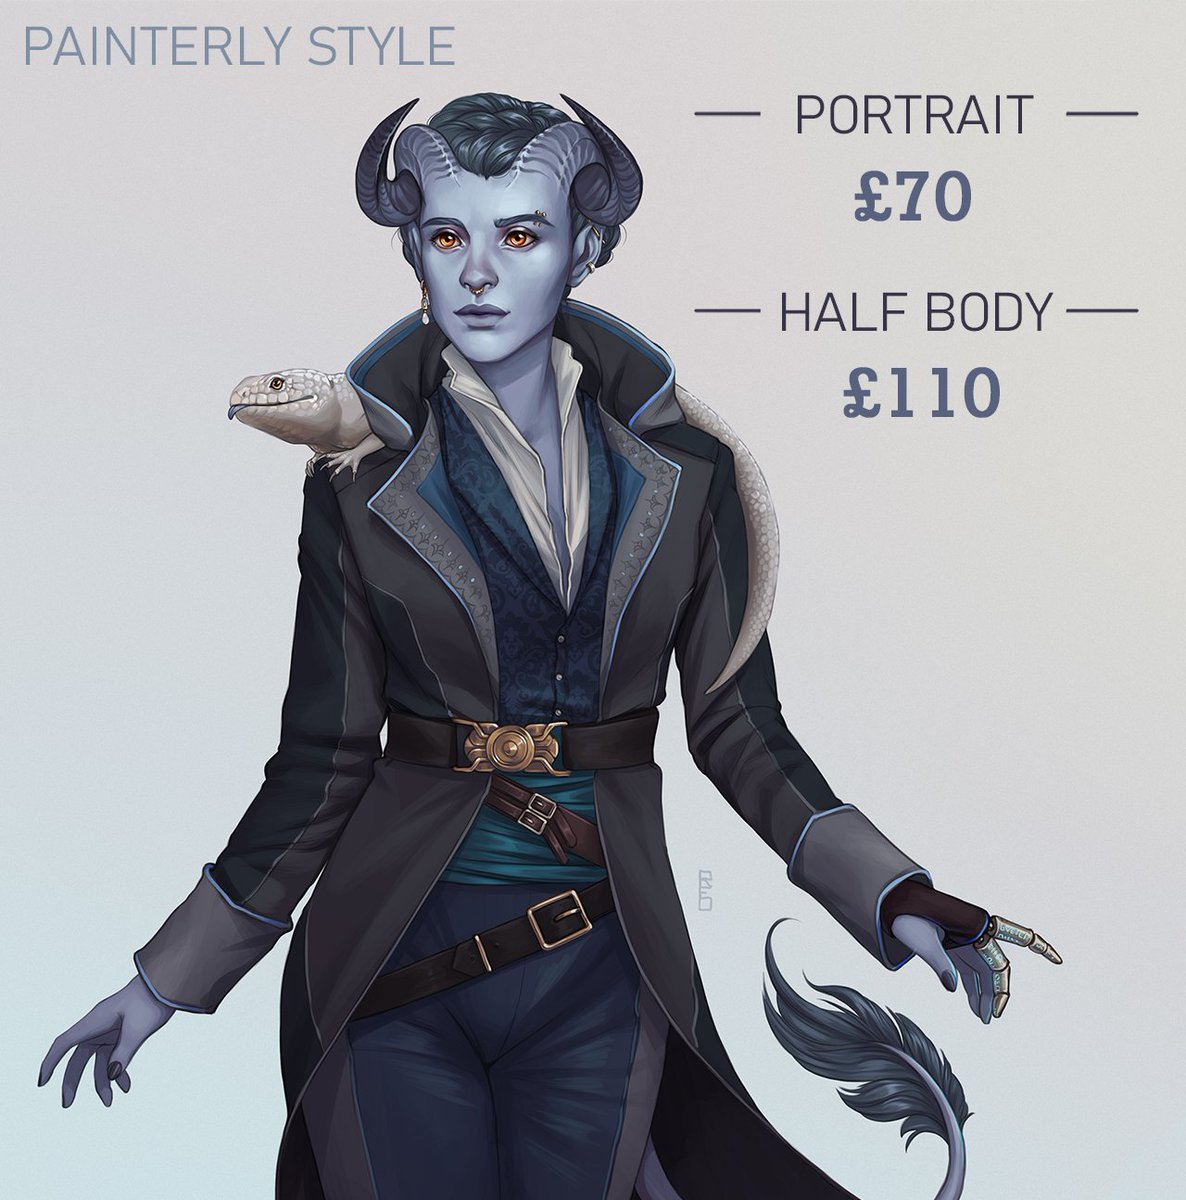 My general commissions are open! Slots are very limited, but if you are interested please send me a DM or email to:  rdentonart@gmail.com. More info can be found at the link below!  Thank you all so much for the support so far! 💚  #art #dnd #dnd5e #ttrpg https://t.co/kM1kzk5nDJ